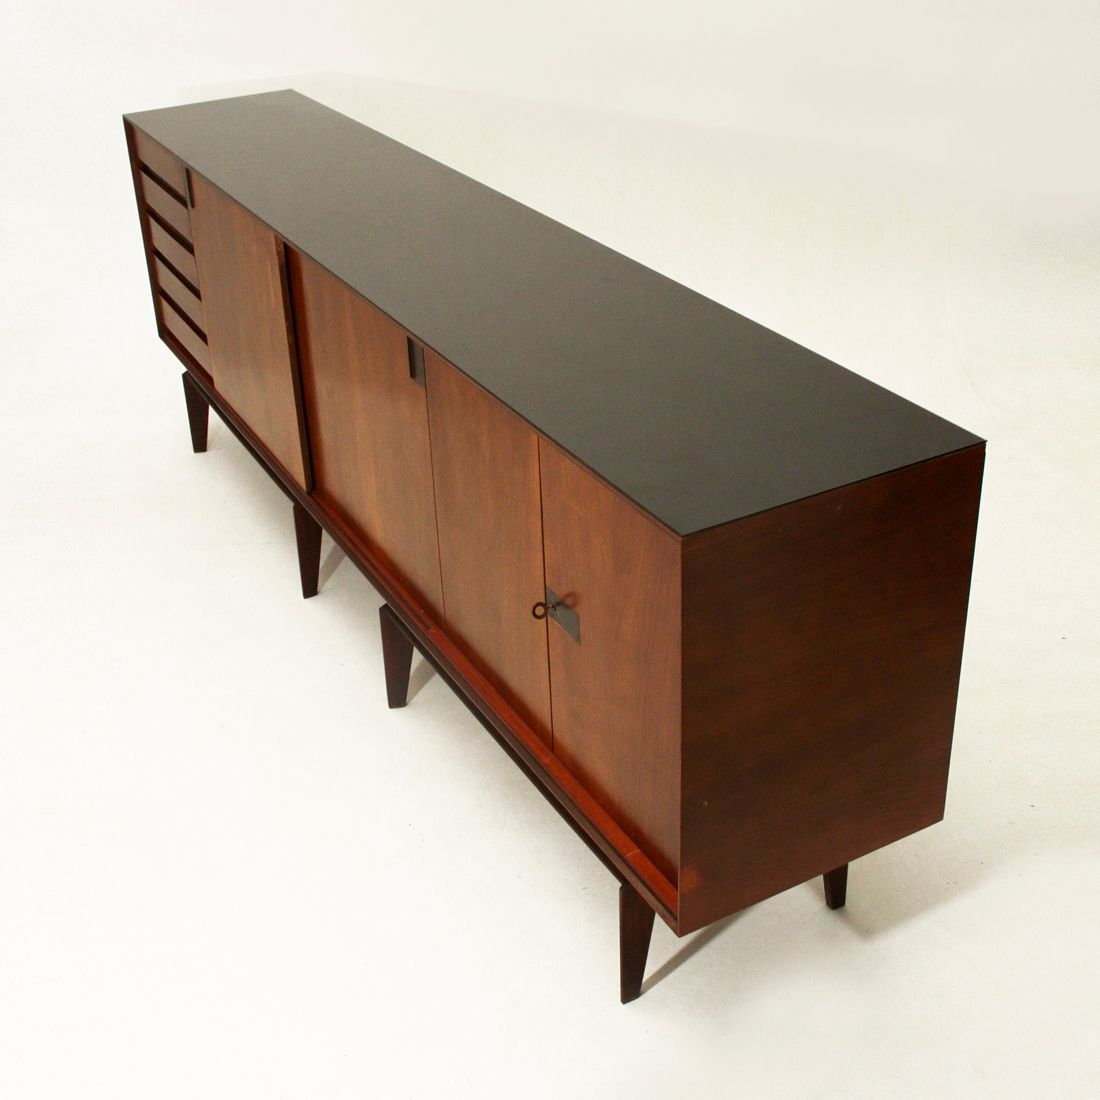 palisander sideboard by edmondo palutari for dassi 1950s for sale at pamono. Black Bedroom Furniture Sets. Home Design Ideas